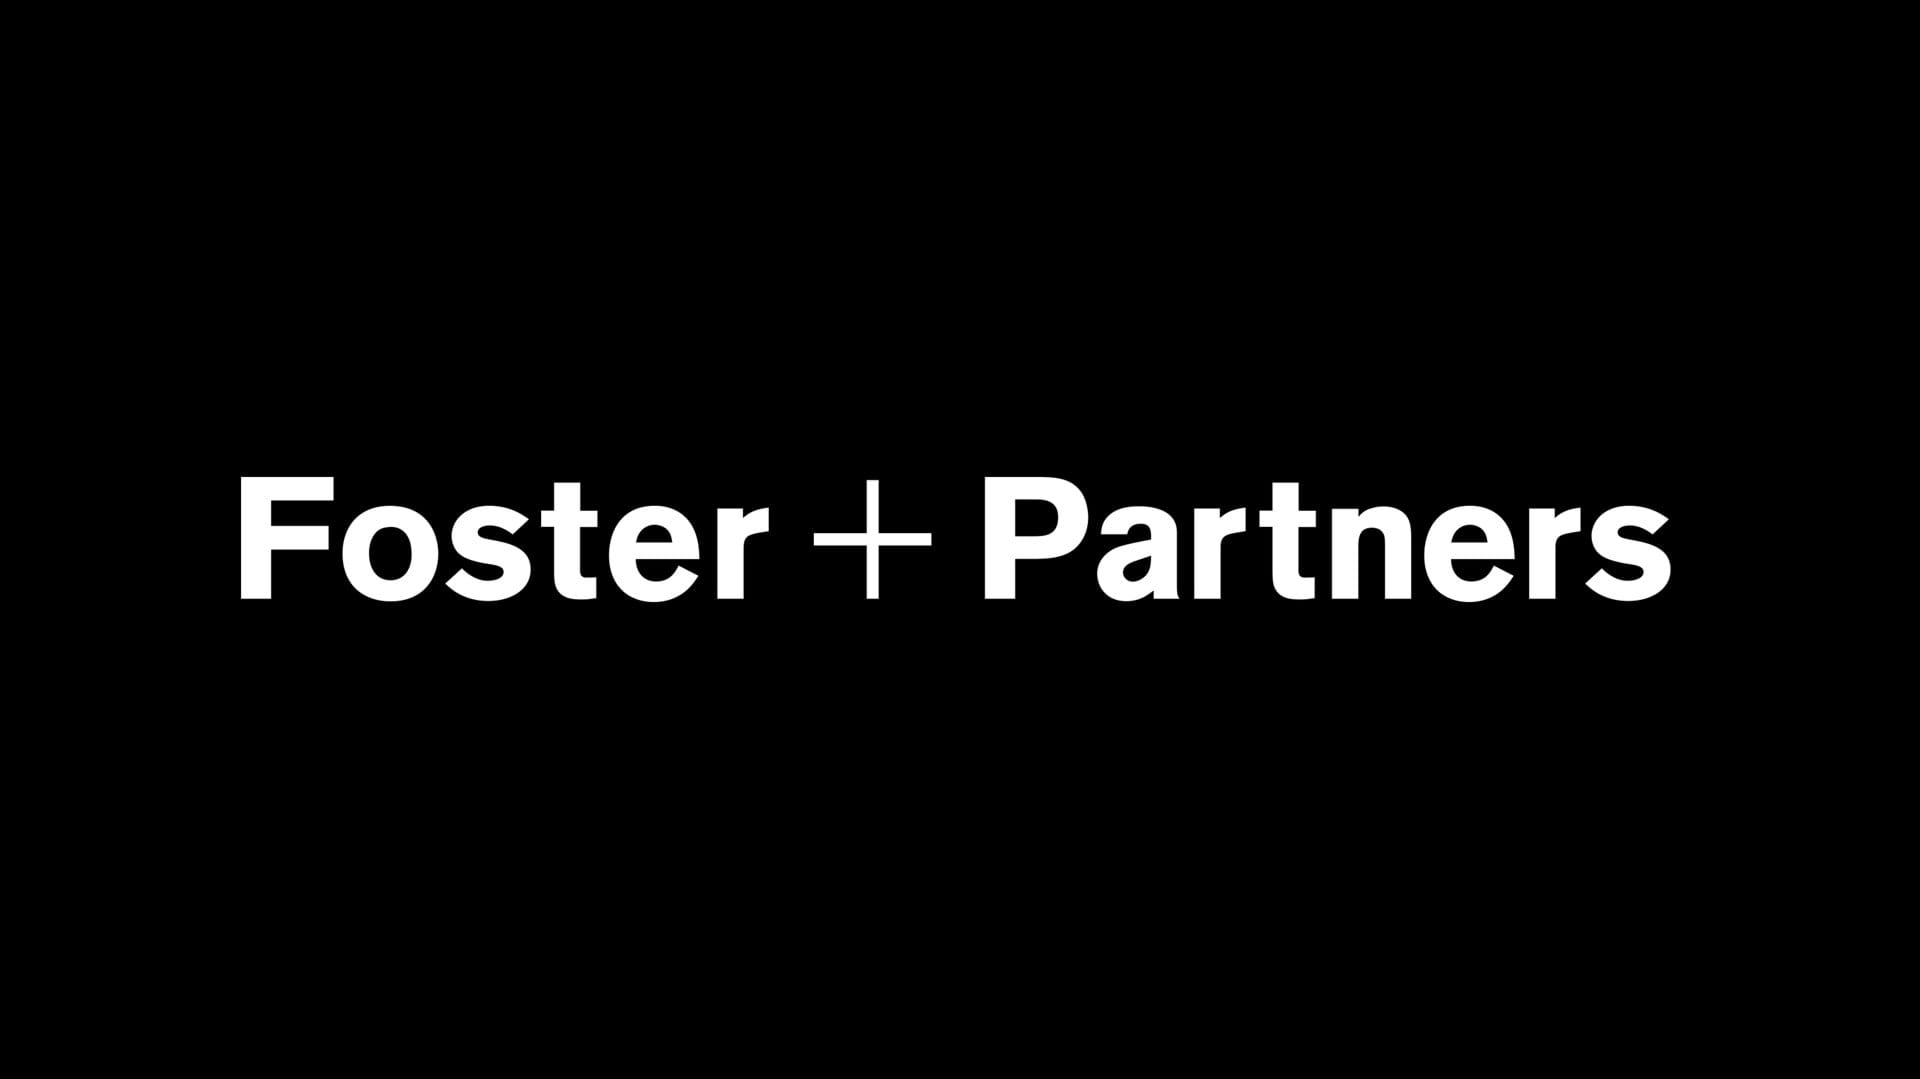 Foster partners logo